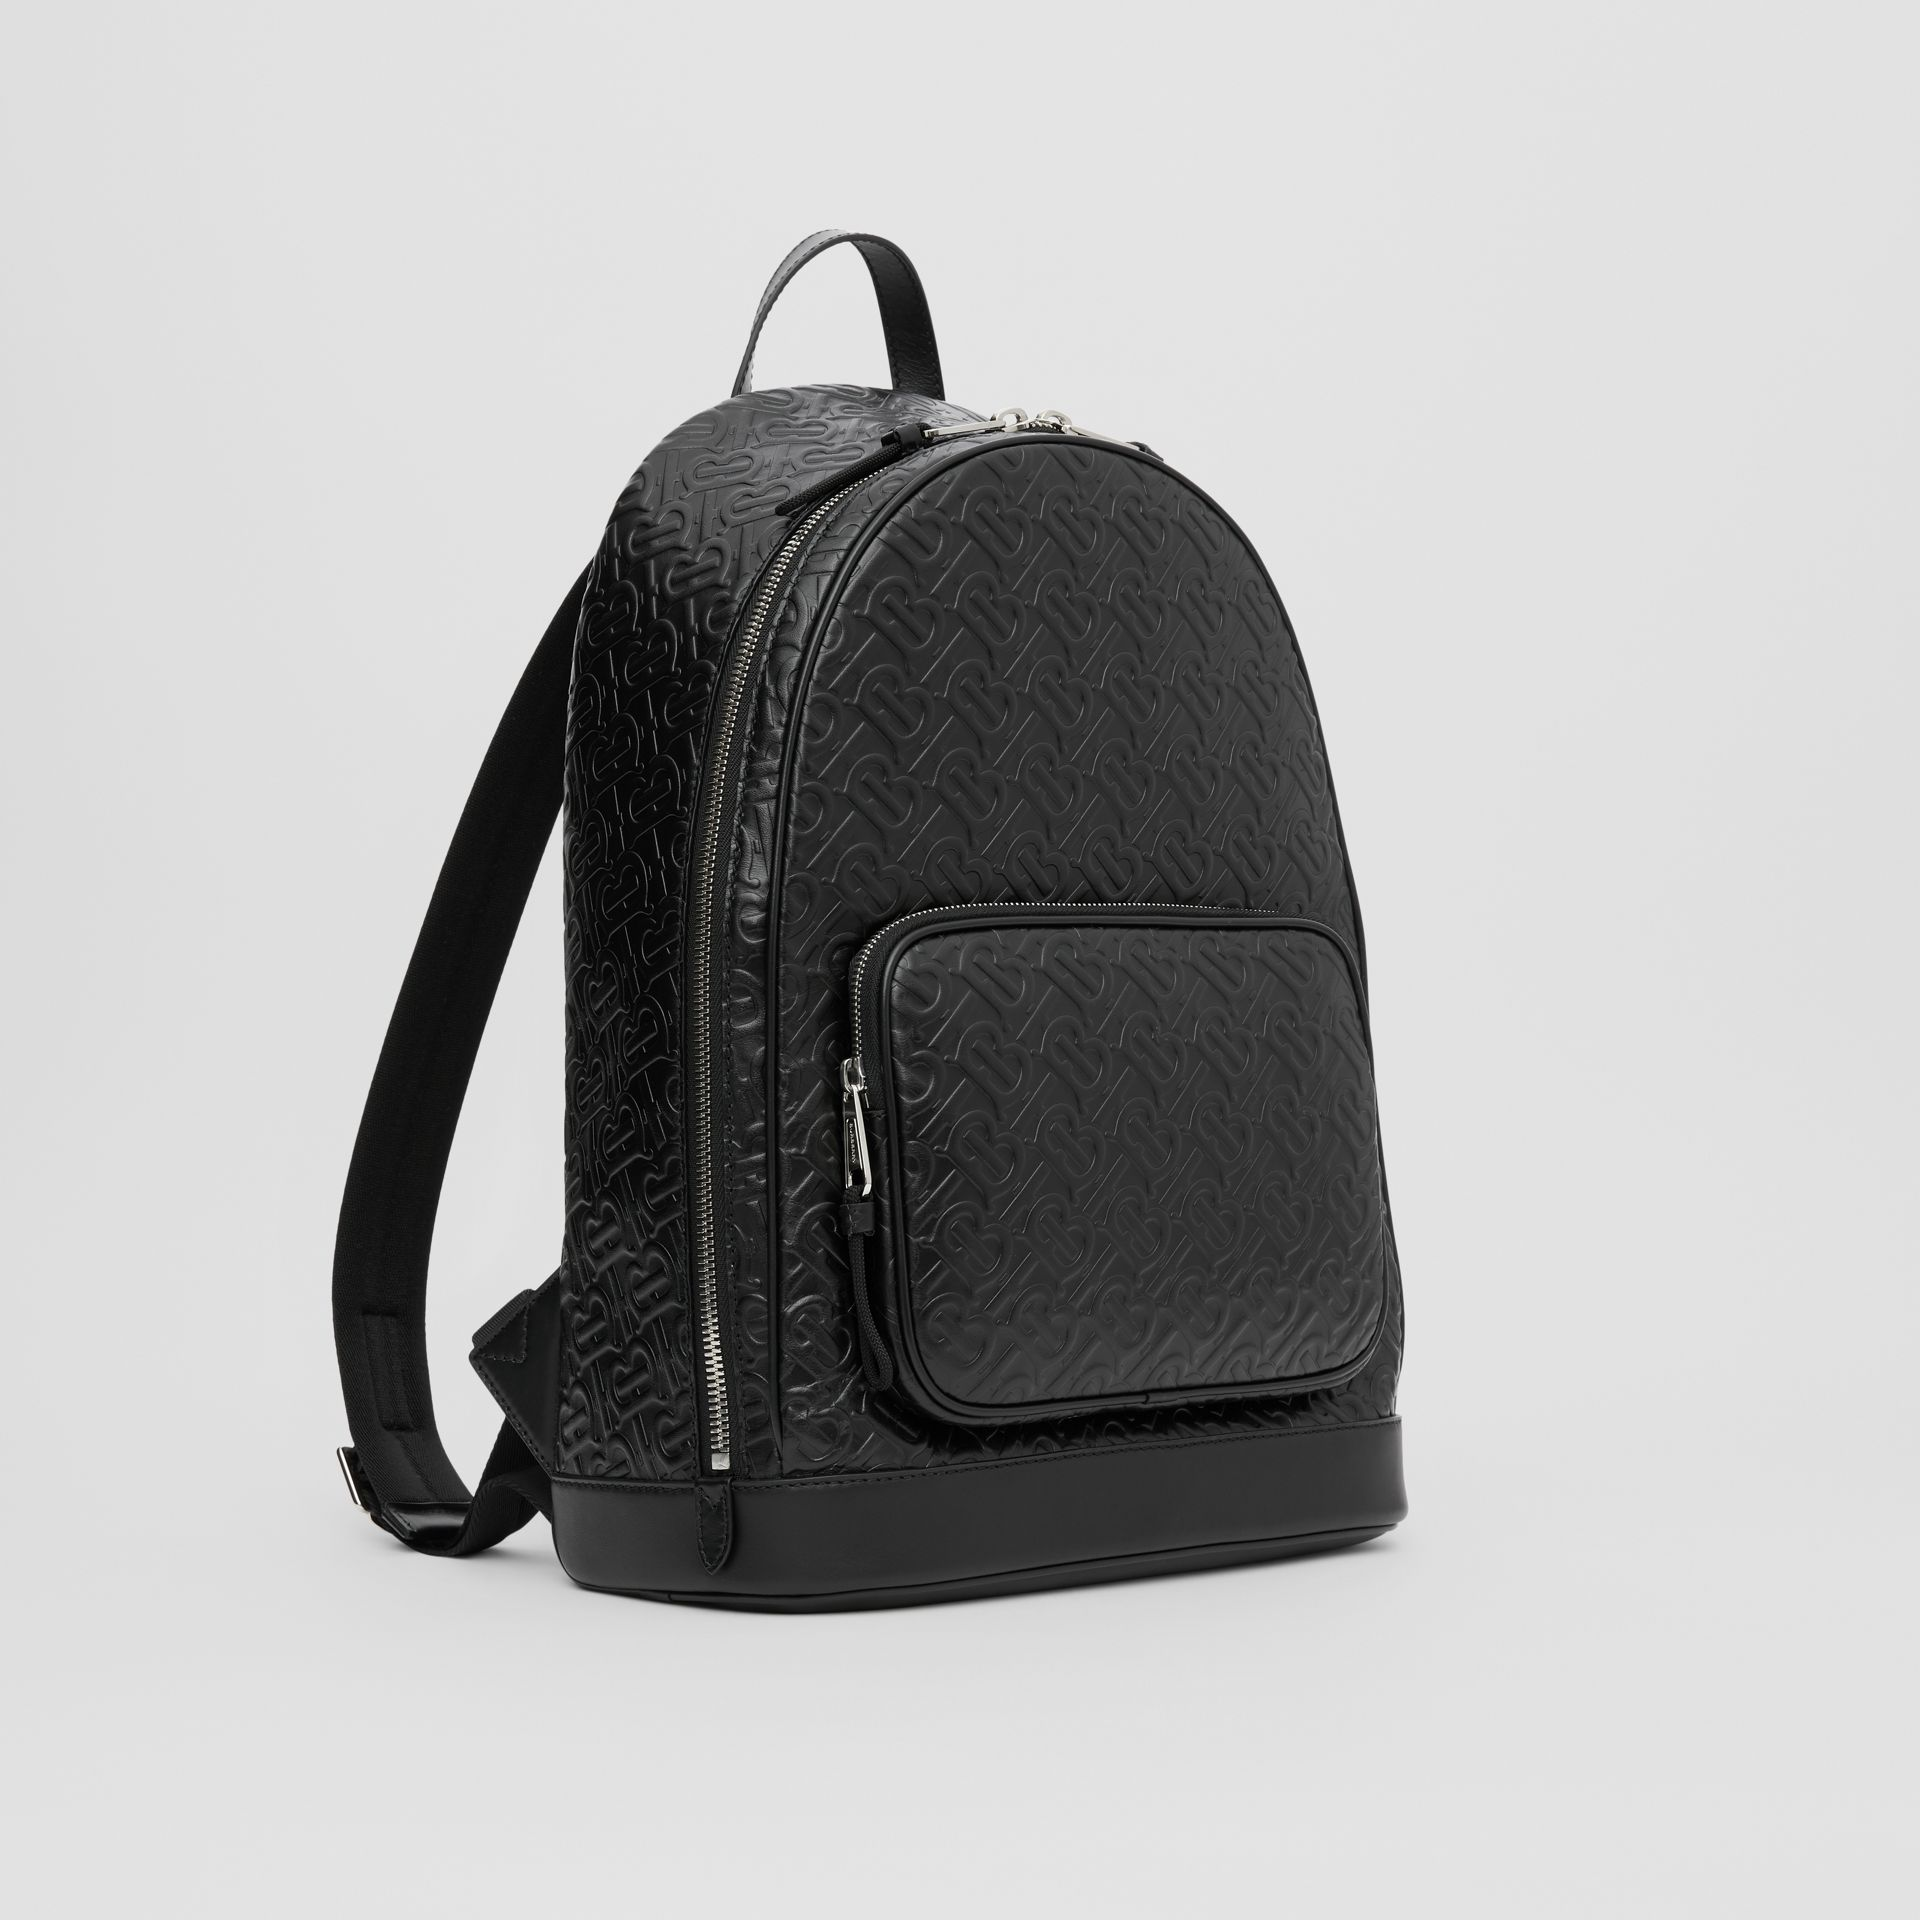 Monogram Leather Backpack in Black - Men | Burberry - gallery image 6